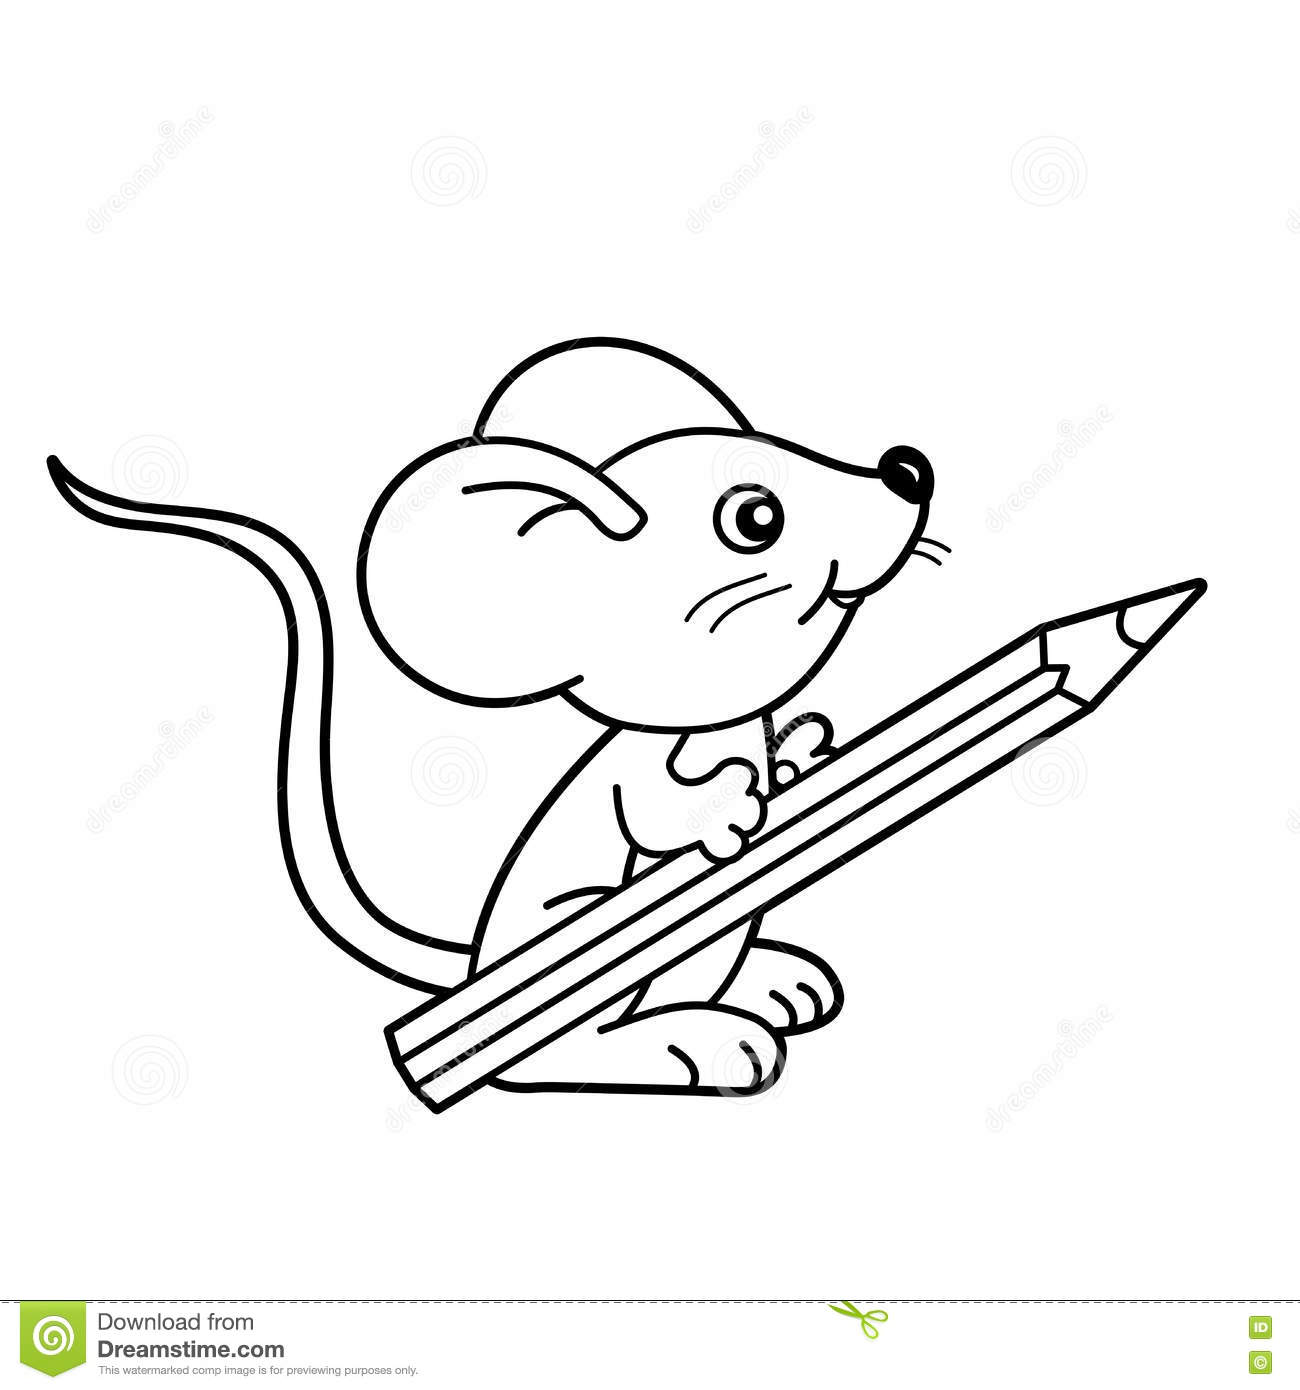 Coloring Page Outline Of Cartoon Little Mouse With Pencil